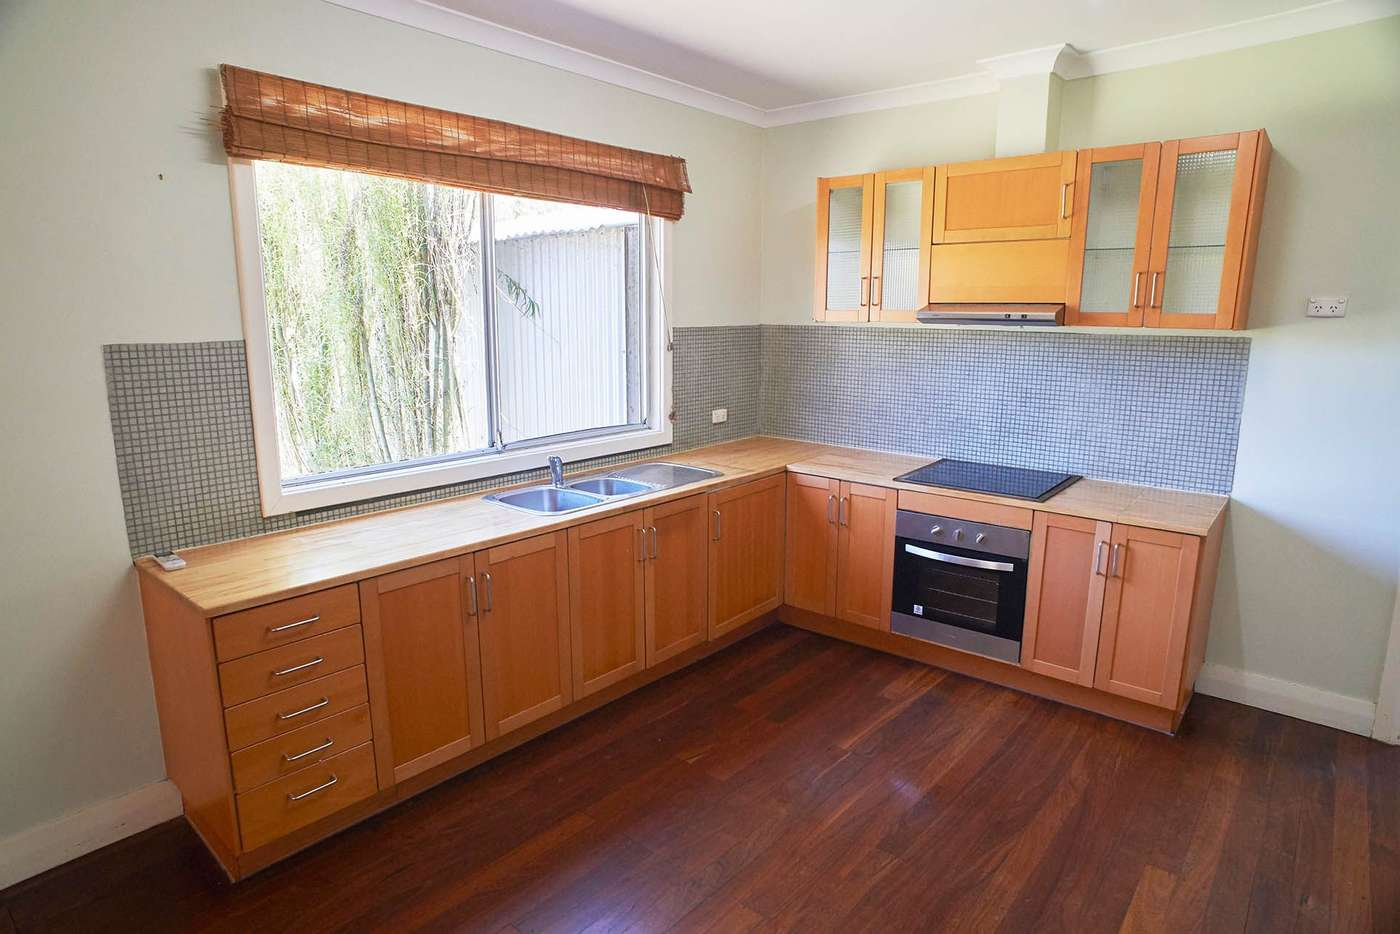 Sixth view of Homely house listing, 1 Bolton Close, Denmark WA 6333